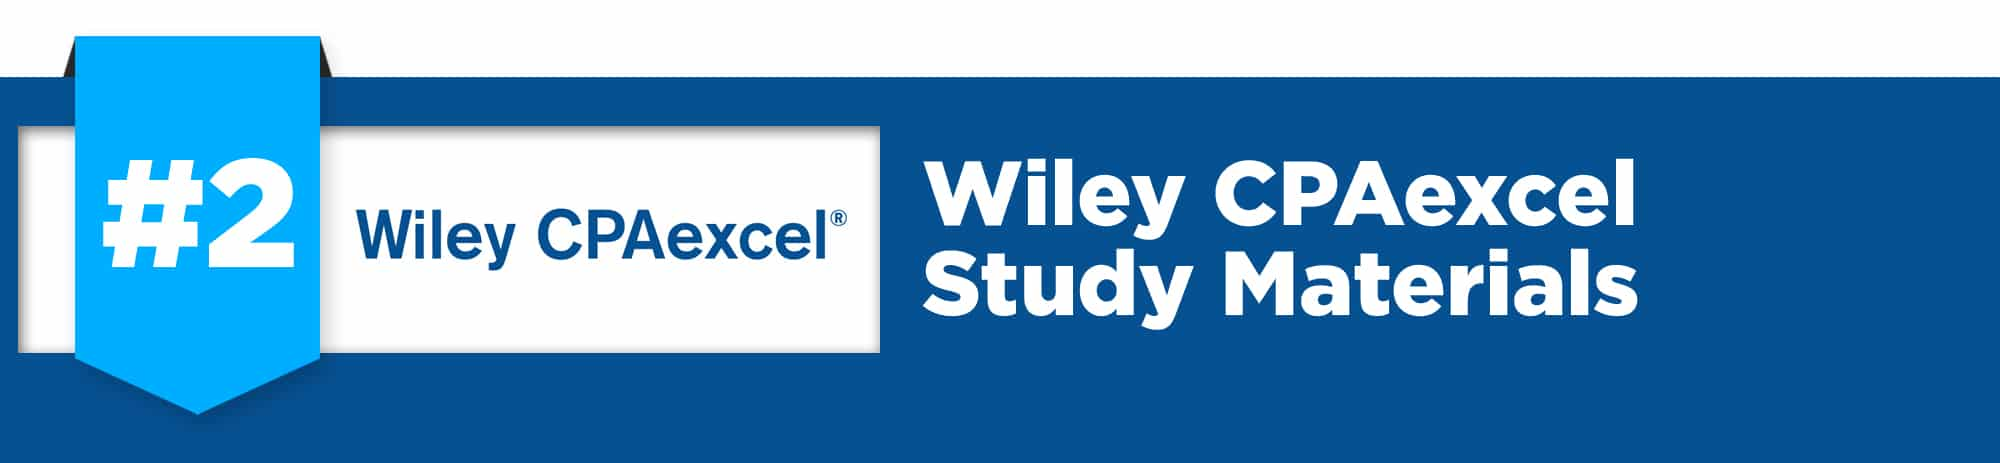 wiley cpaexcel reviews